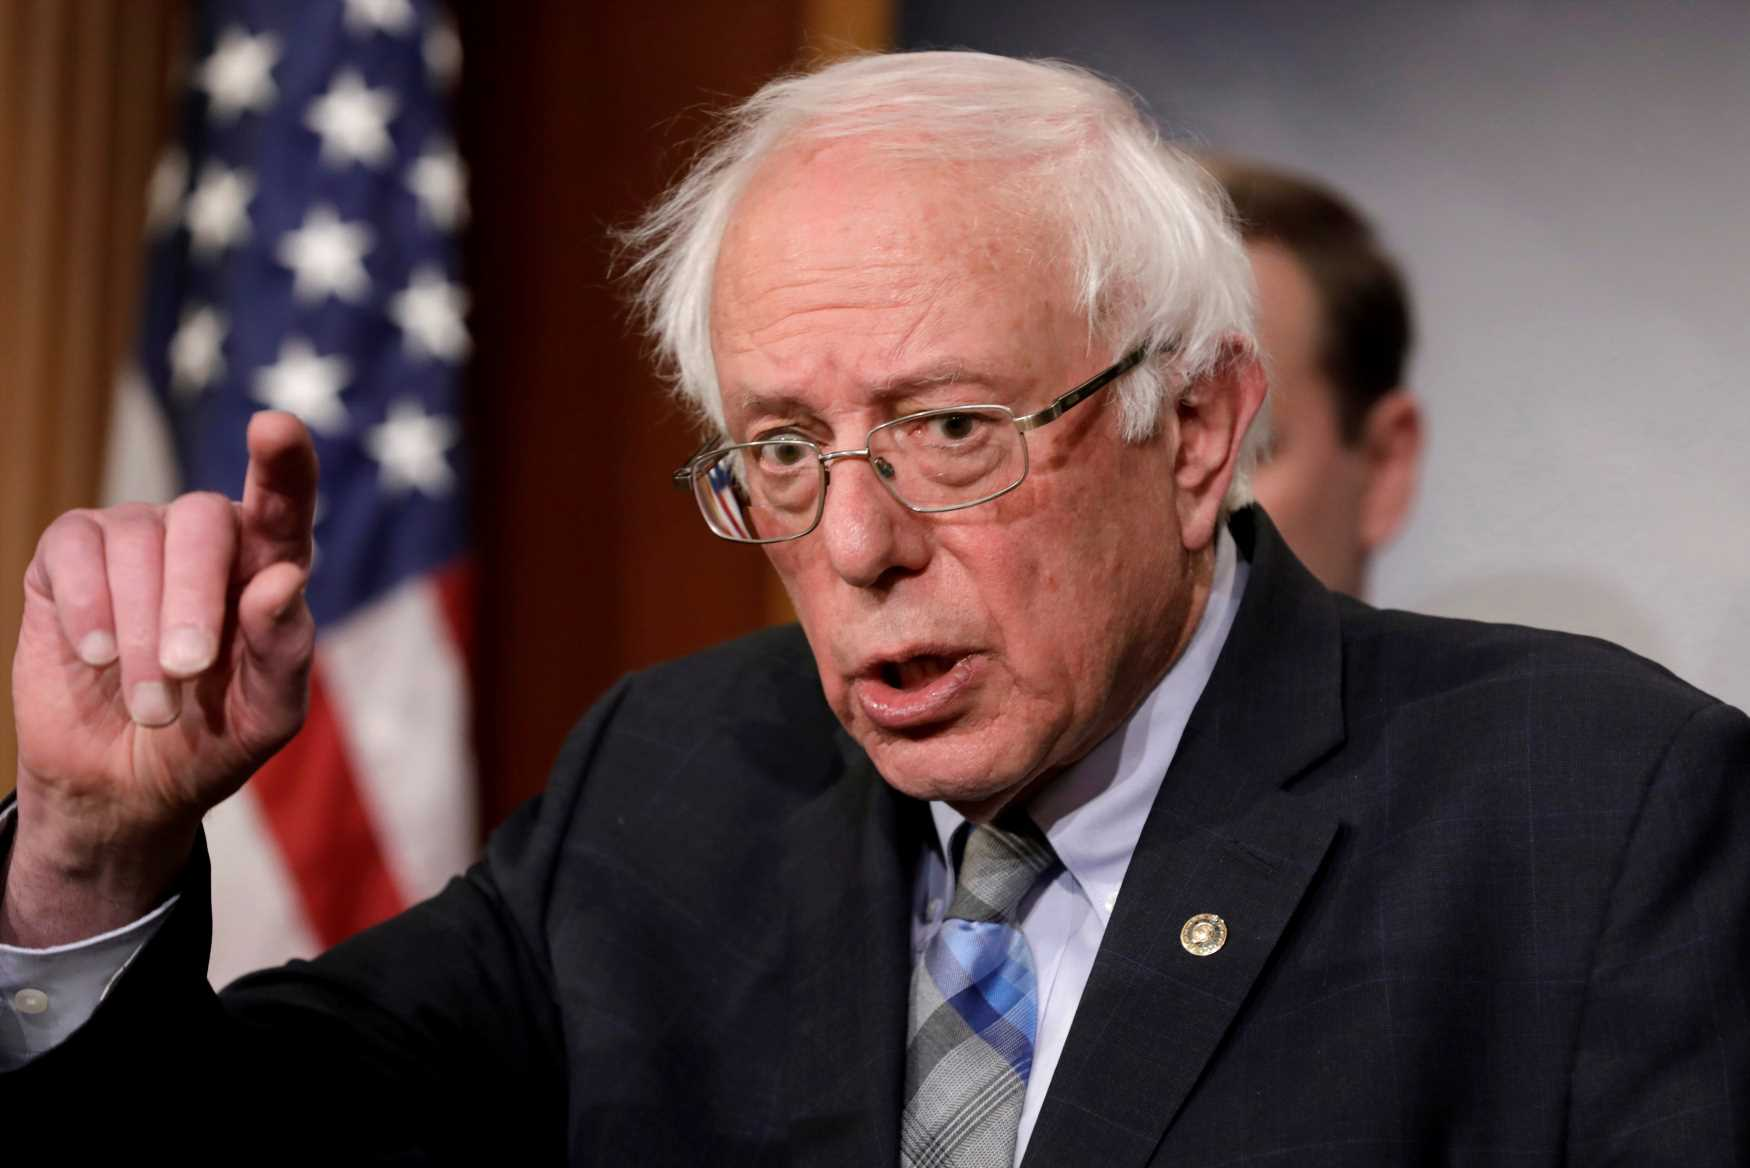 Who is Bernie Sanders? Democrat running against Donald Trump in the 2020 US Presidential election